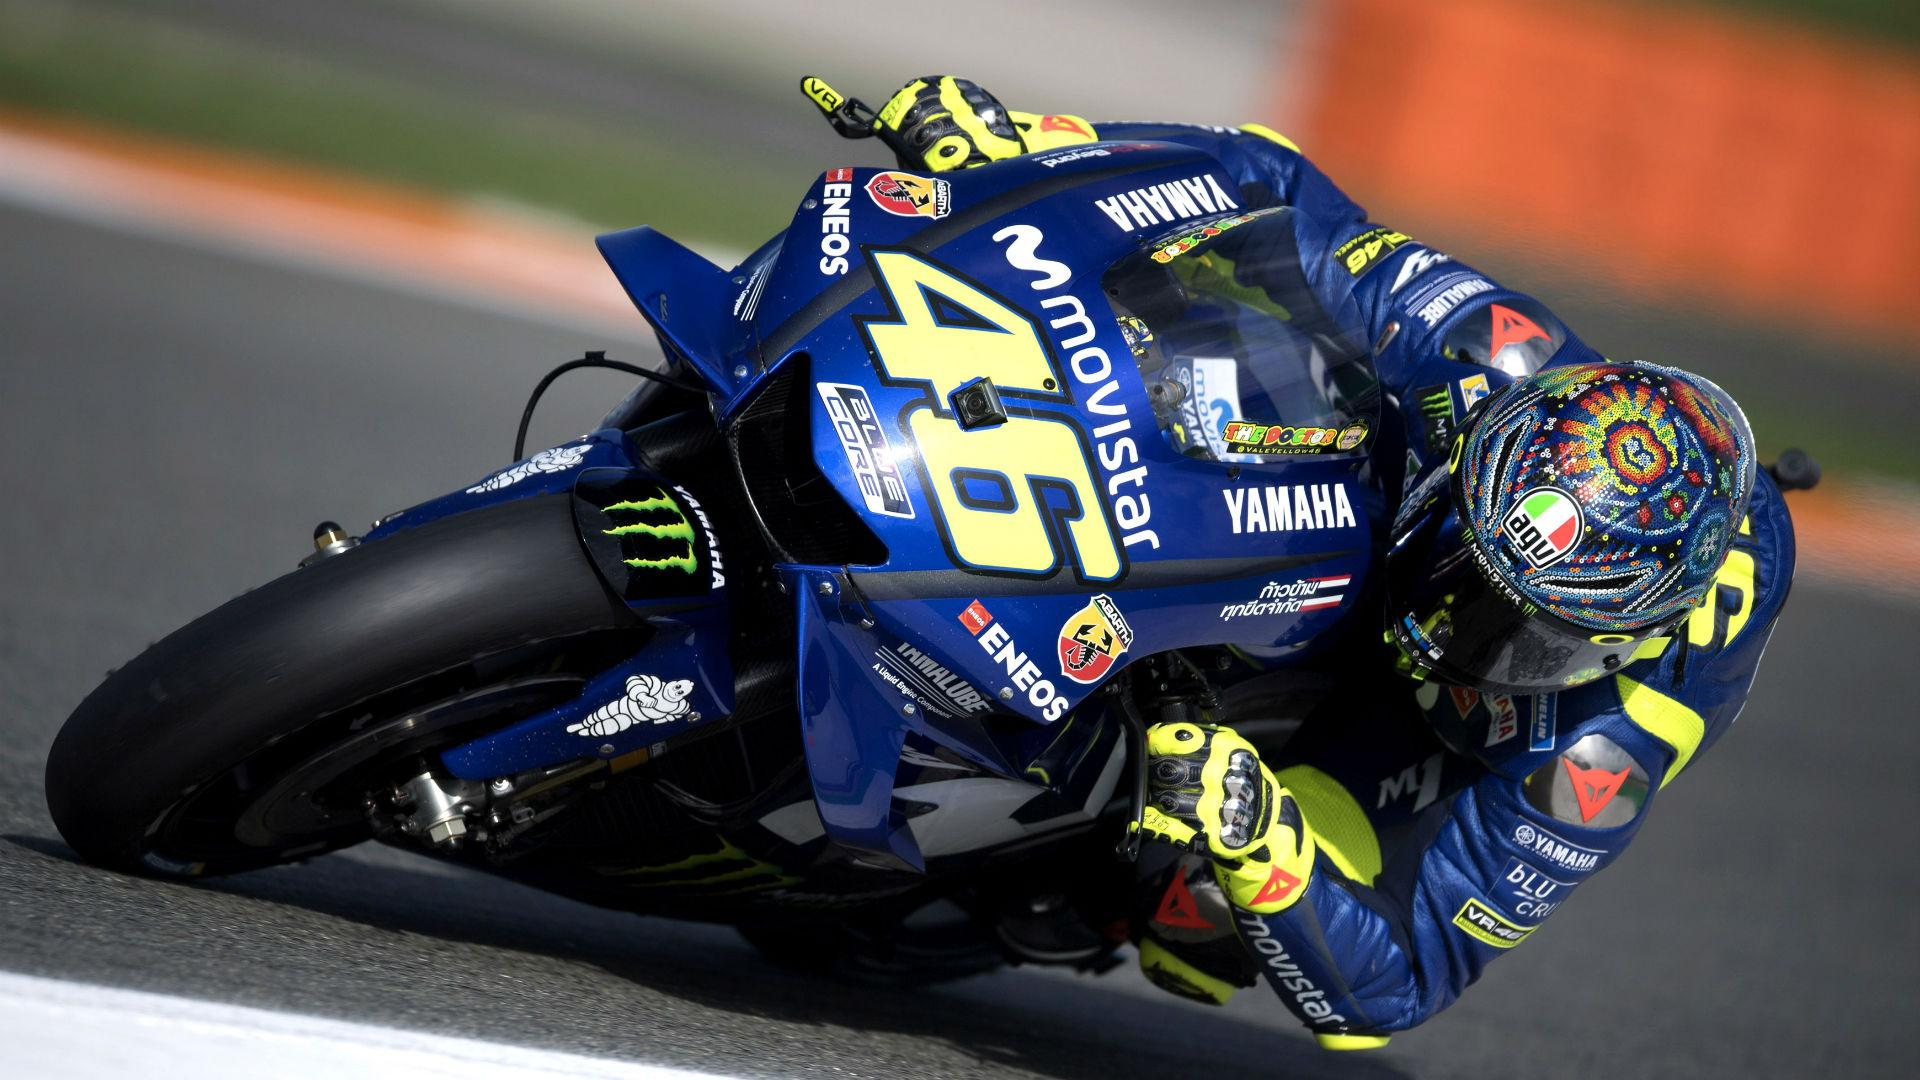 Yamaha have a lot of work to do for 2019 – Rossi